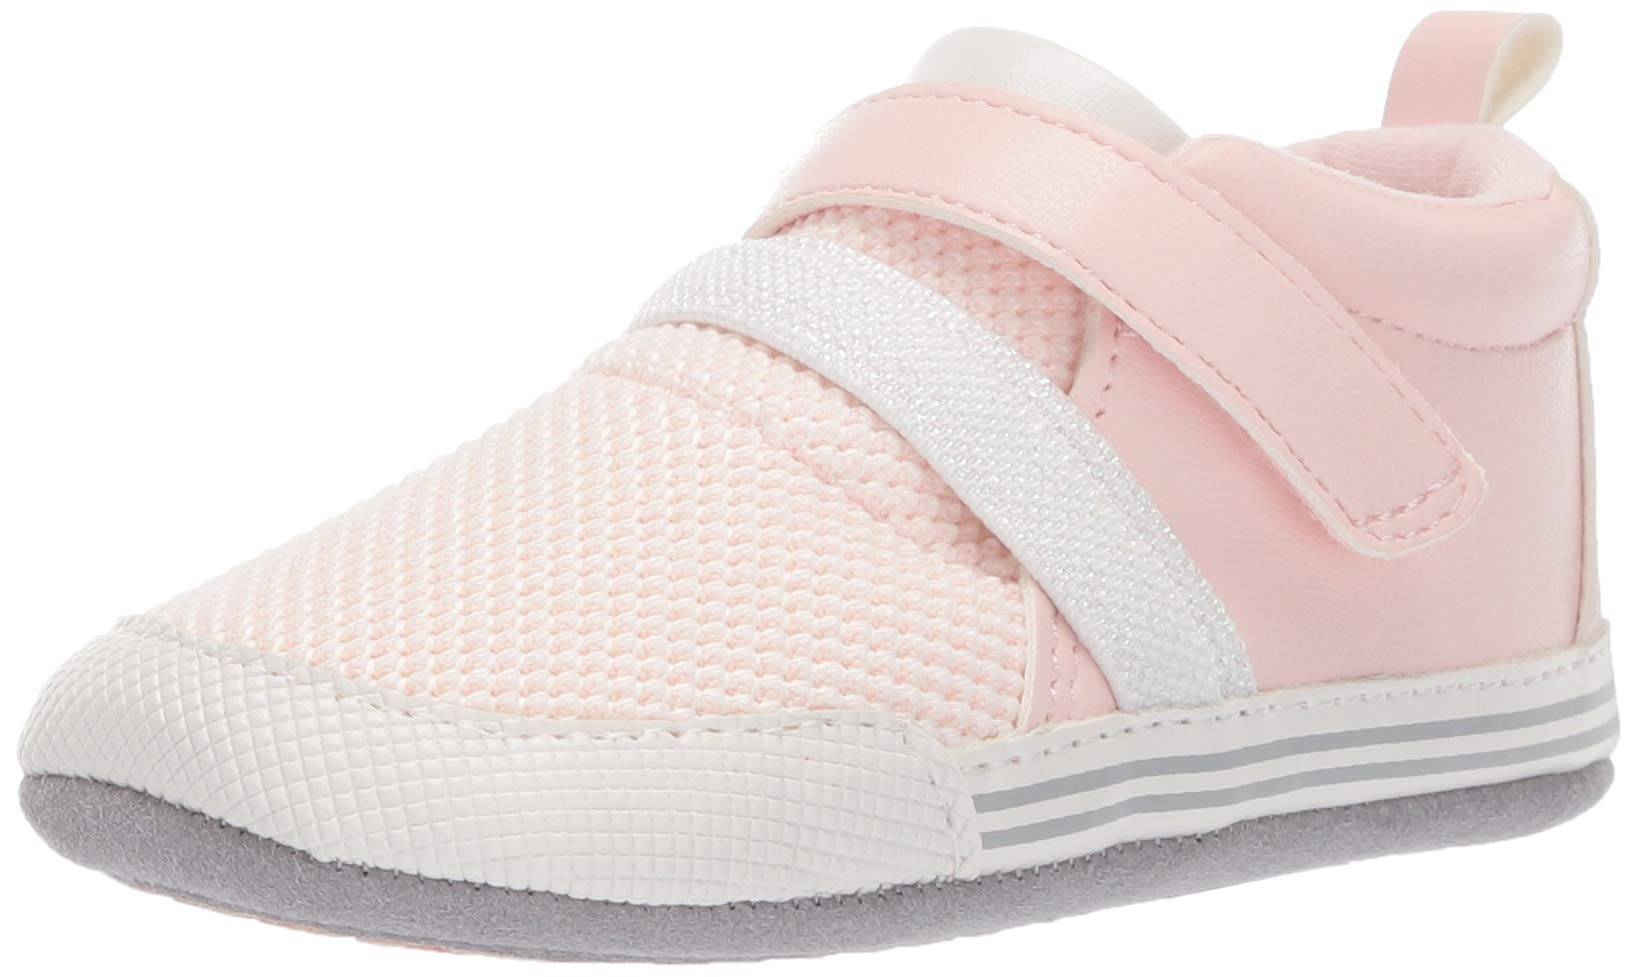 Ro + Me by Robeez Girls' Jill Athletic Sneaker Crib Shoe, Pink, 12-18 Months by Ro + Me by Robeez